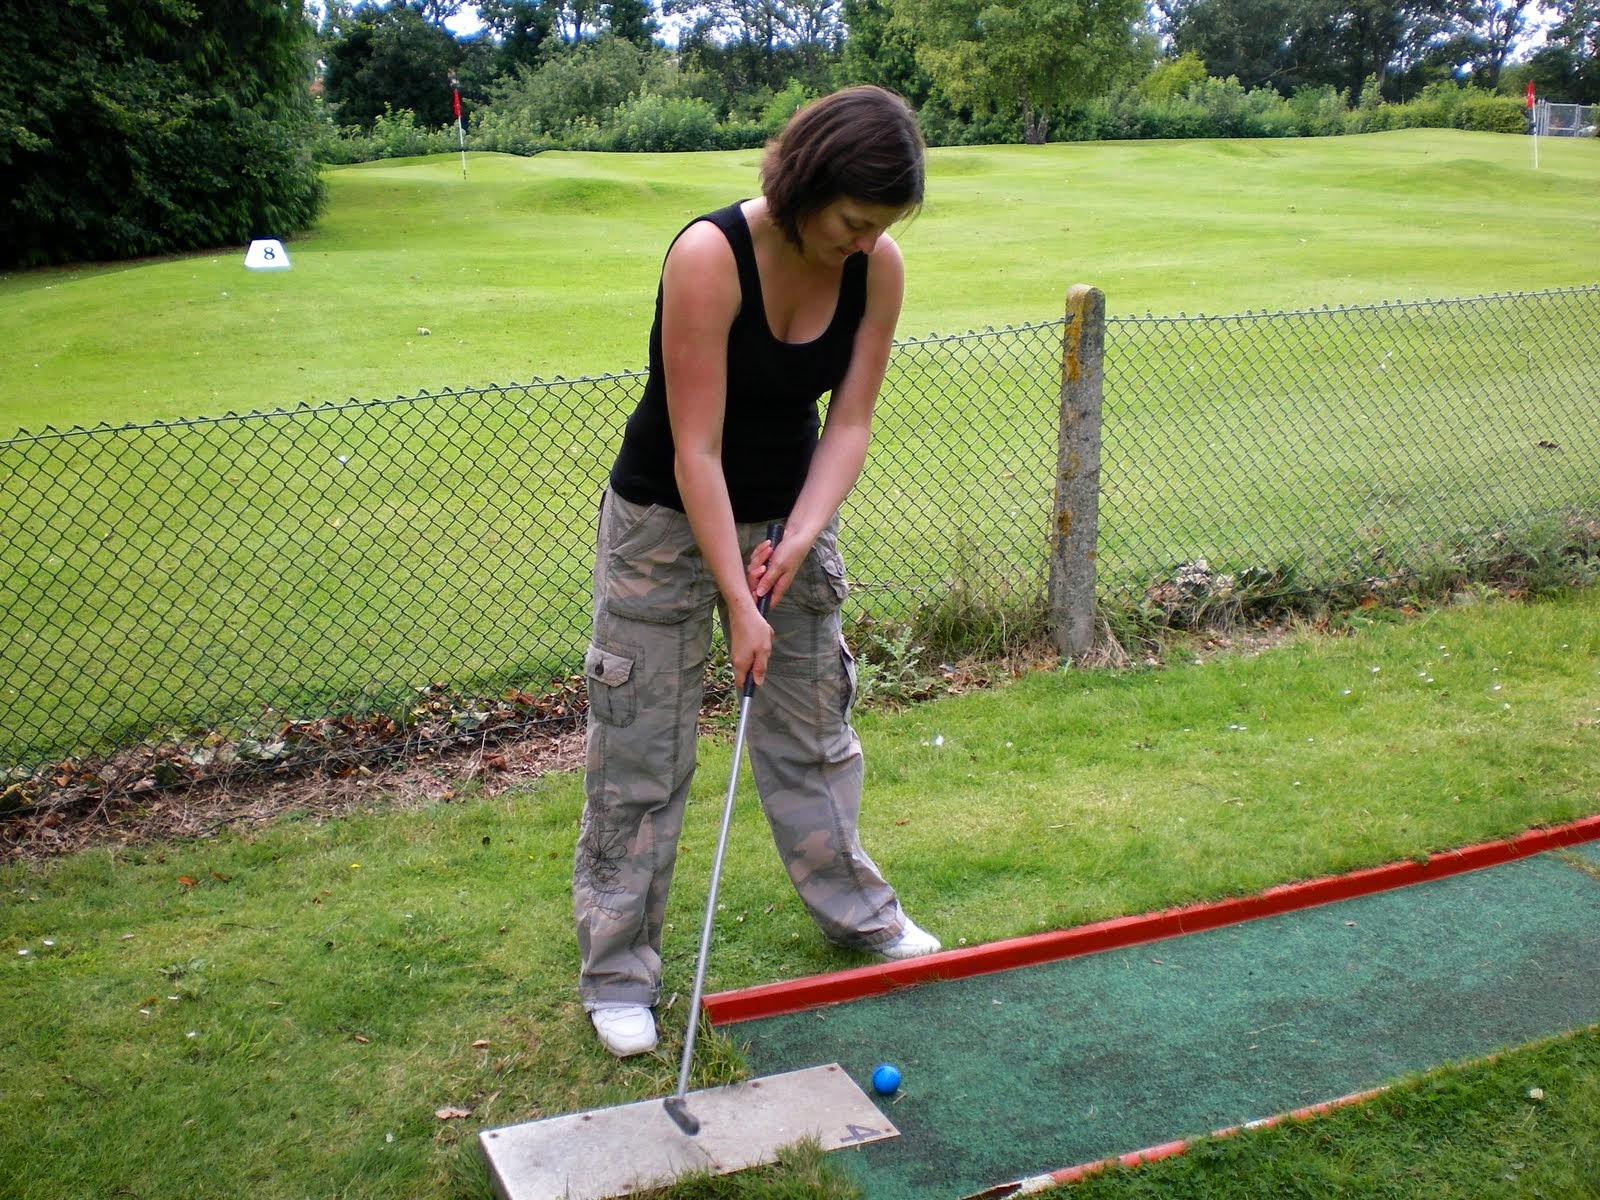 Emily playing Crazy Golf in Luton's Wardown Park in July 2007. The very green grass putting layout is on the other side of the fence